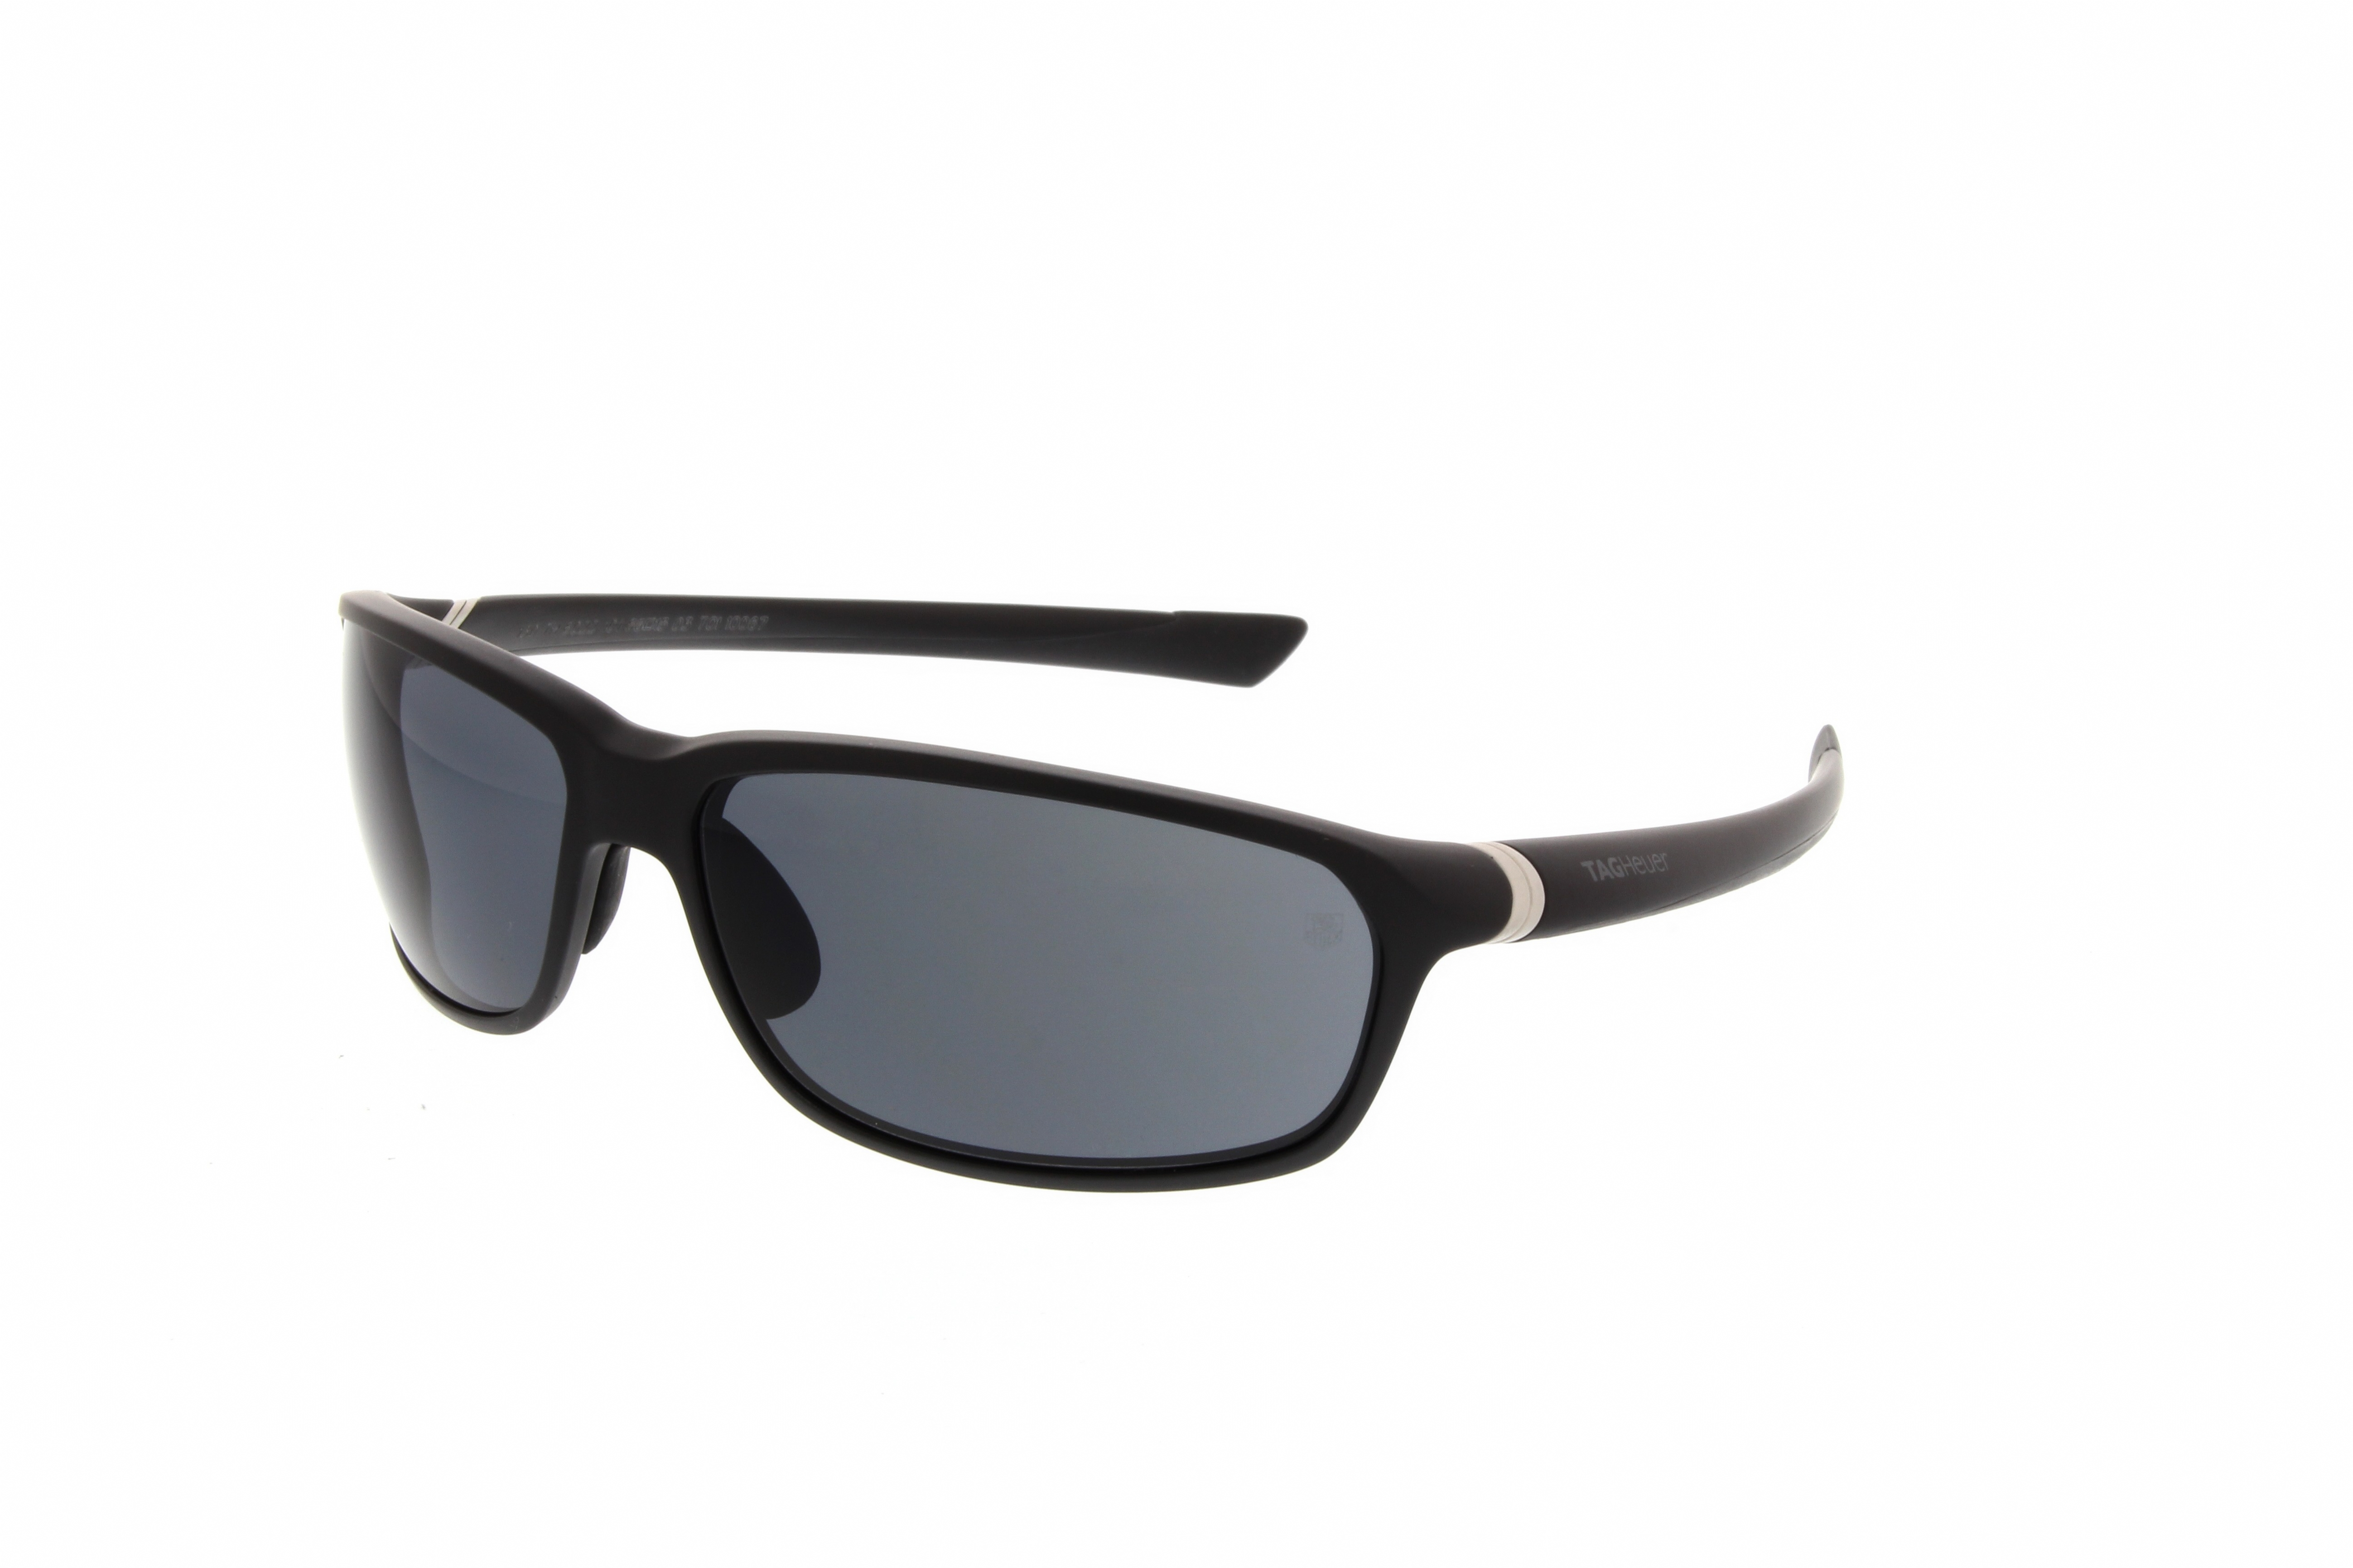 5a3f045f15 Buy Tag Heuer Sunglasses directly from eyeglassesdepot.com